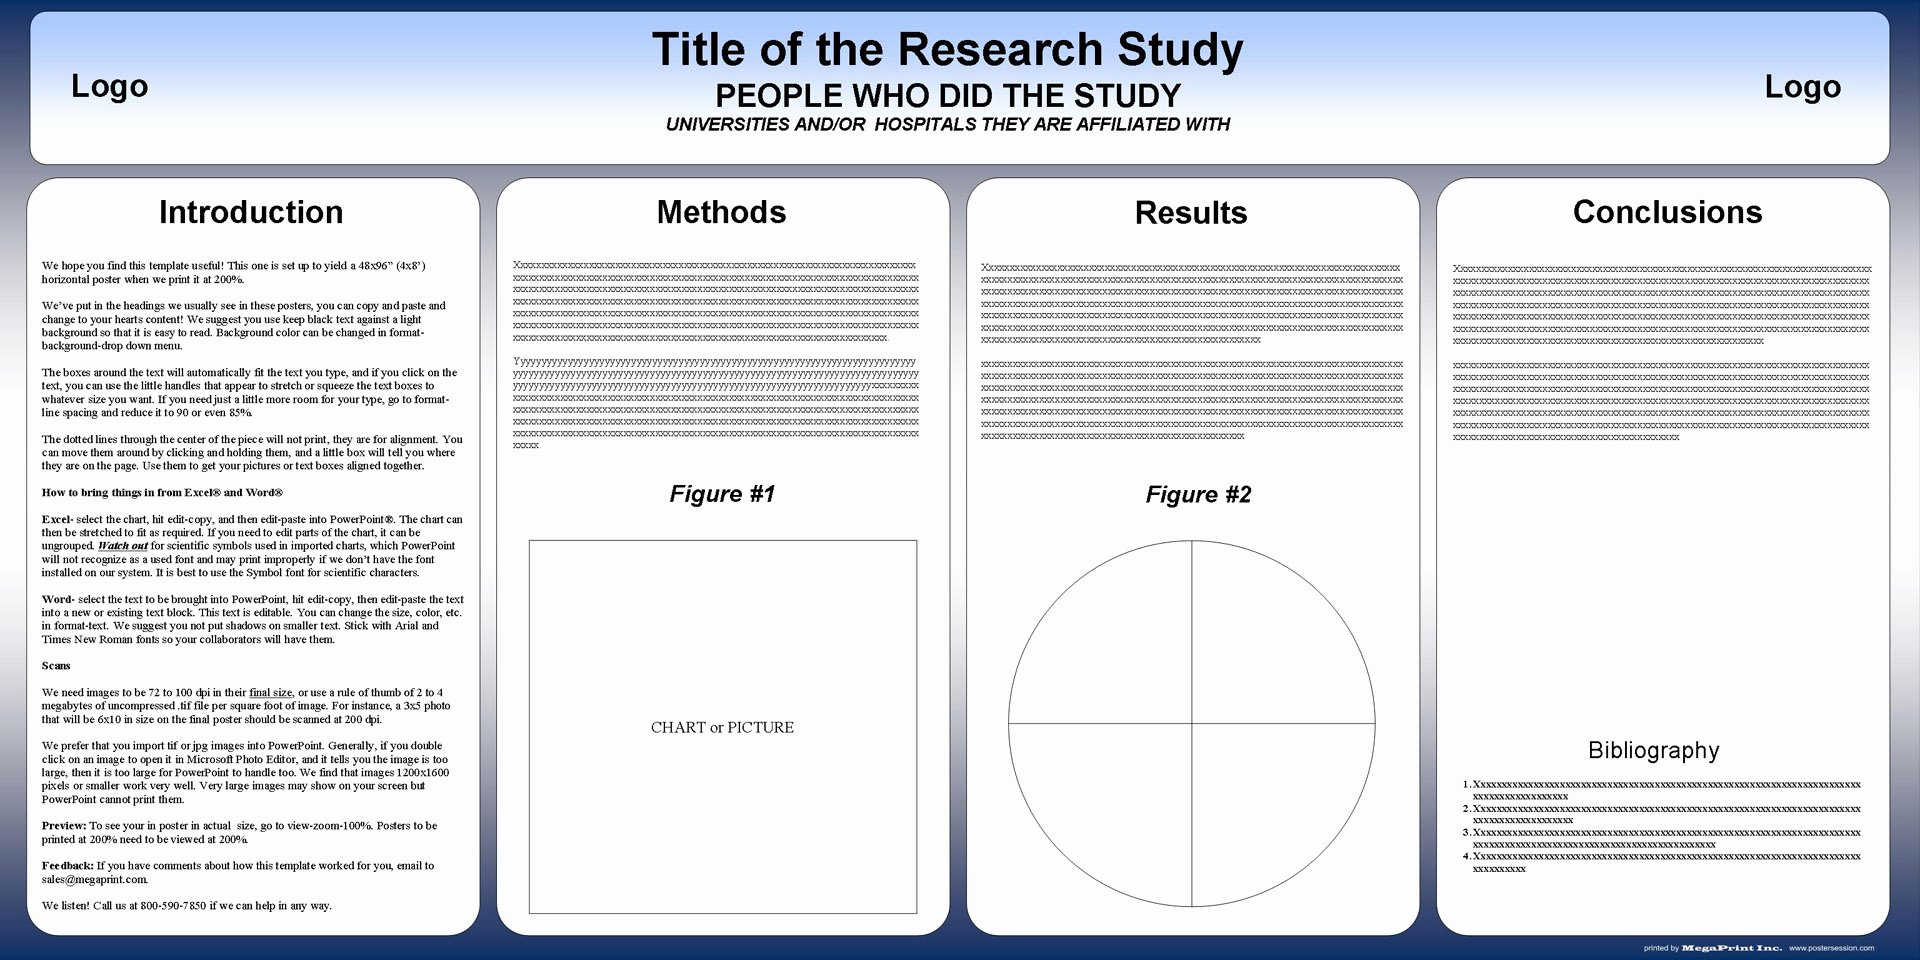 Ppt Poster Template Free Inspirational Free Powerpoint Scientific Research Poster Templates for